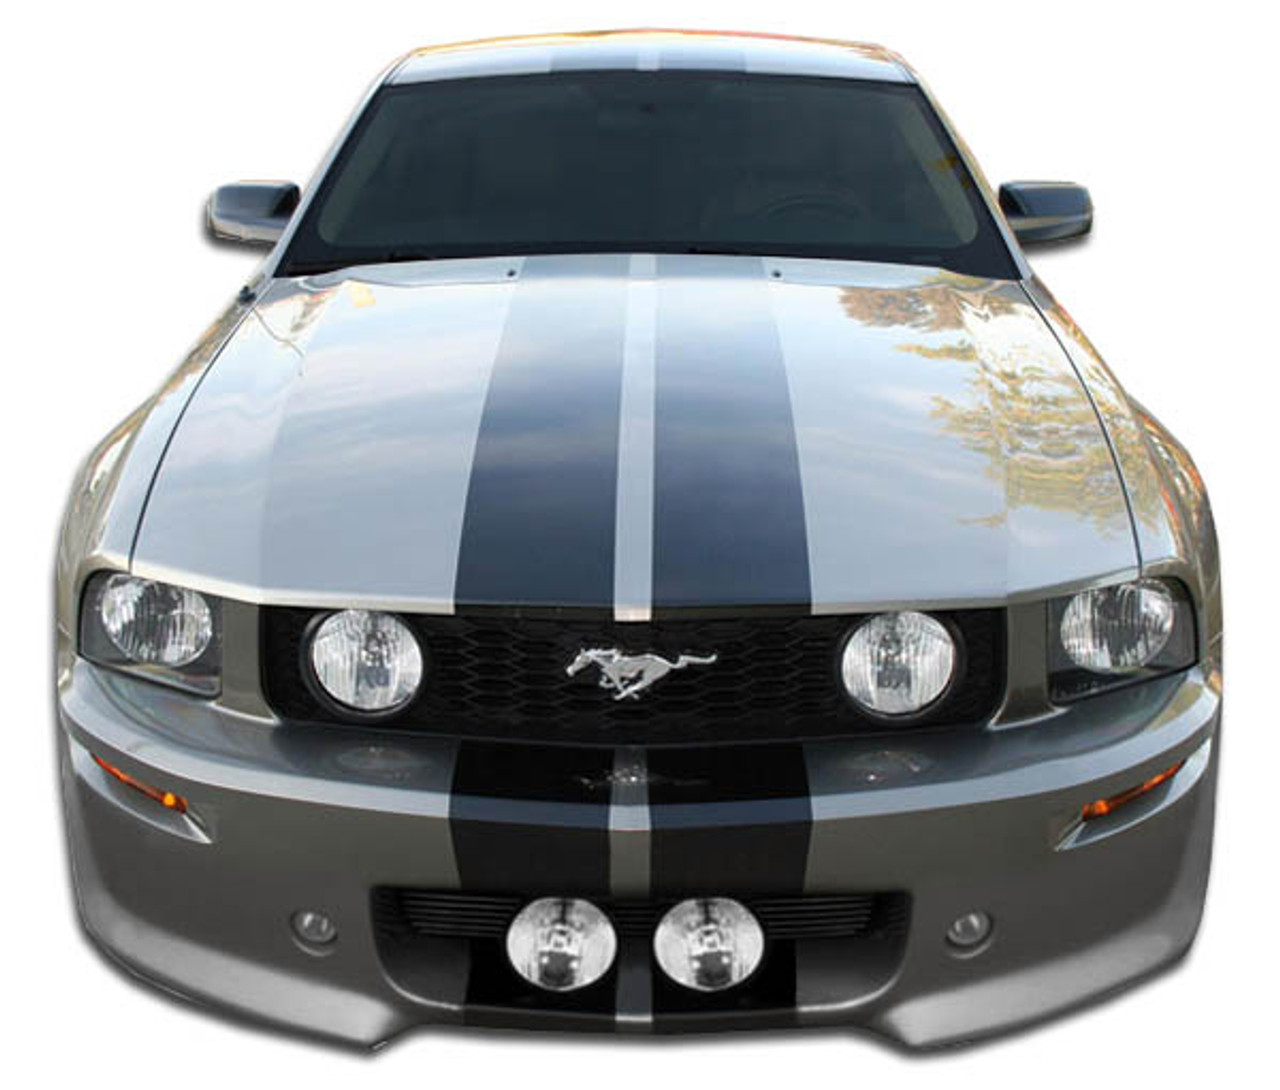 Duraflex 05-09 Ford Mustang Eleanor Front Bumper Cover Kit